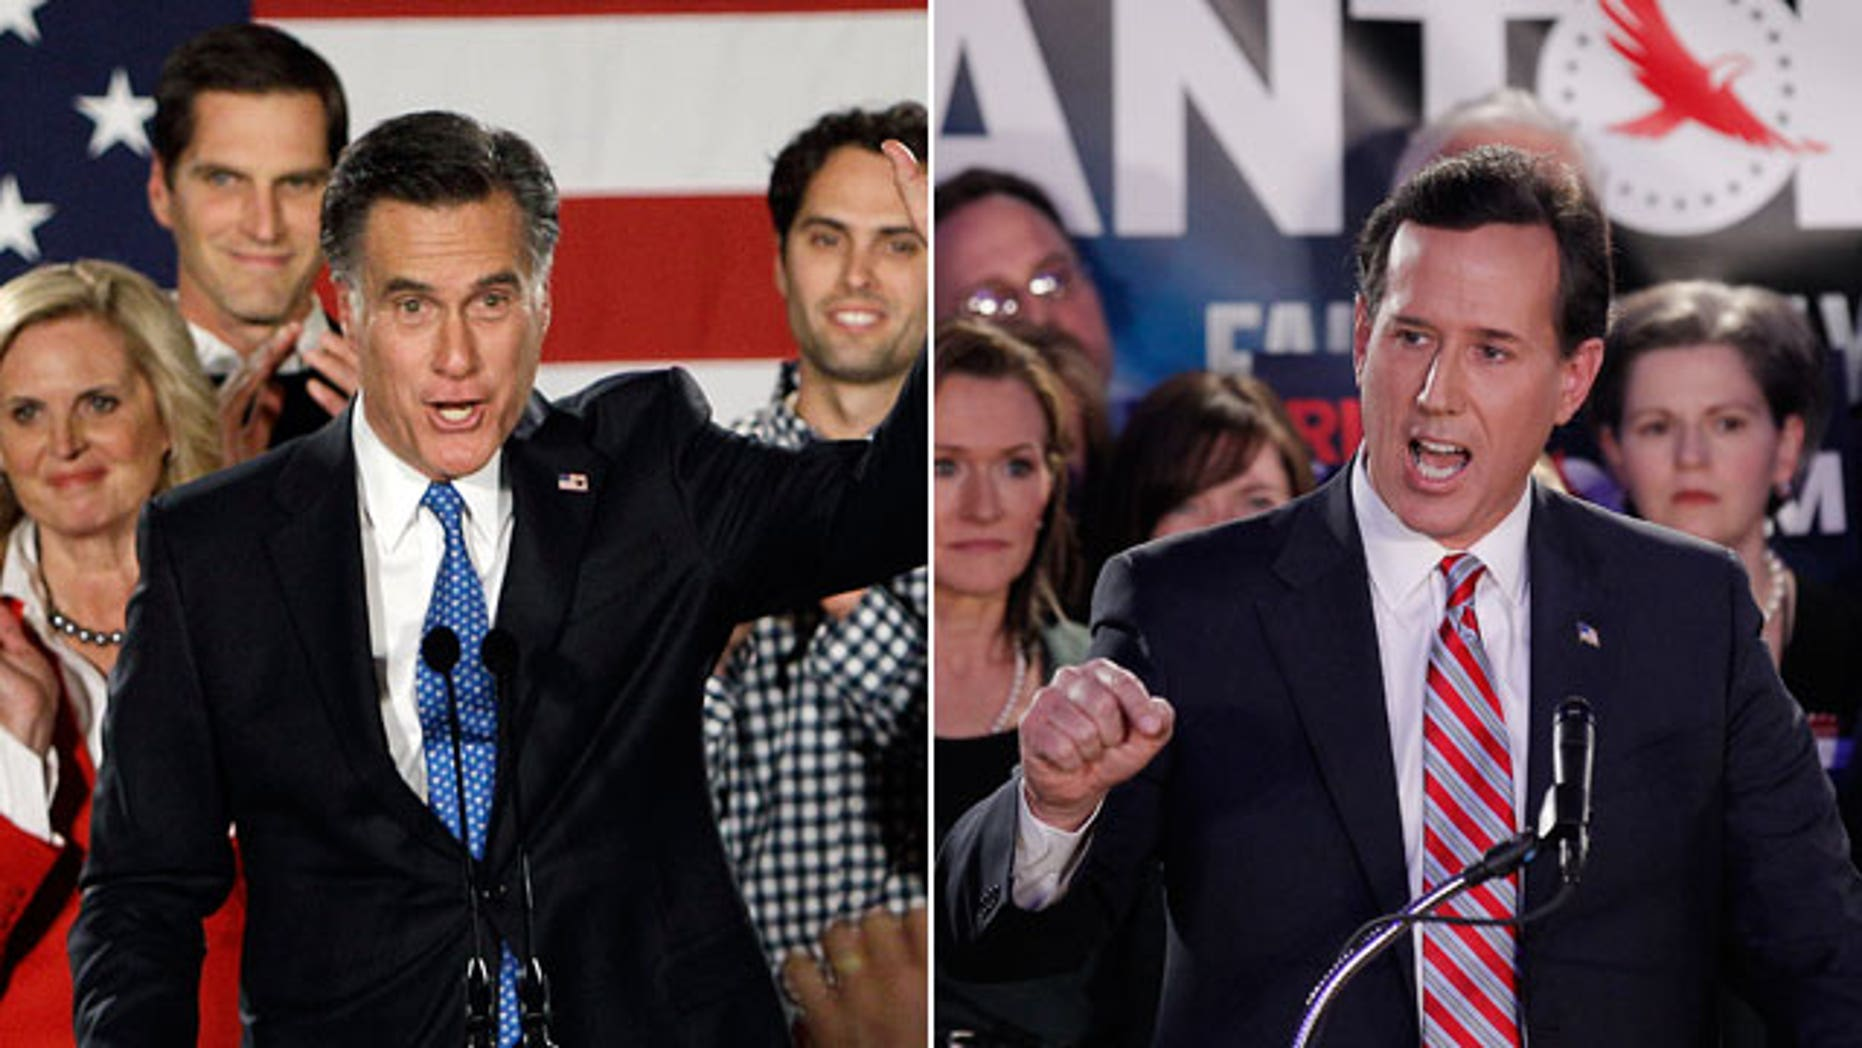 Jan. 3, 2011: Republican candidates Mitt Romney and Rick Santorum address supporters after the Iowa caucuses.